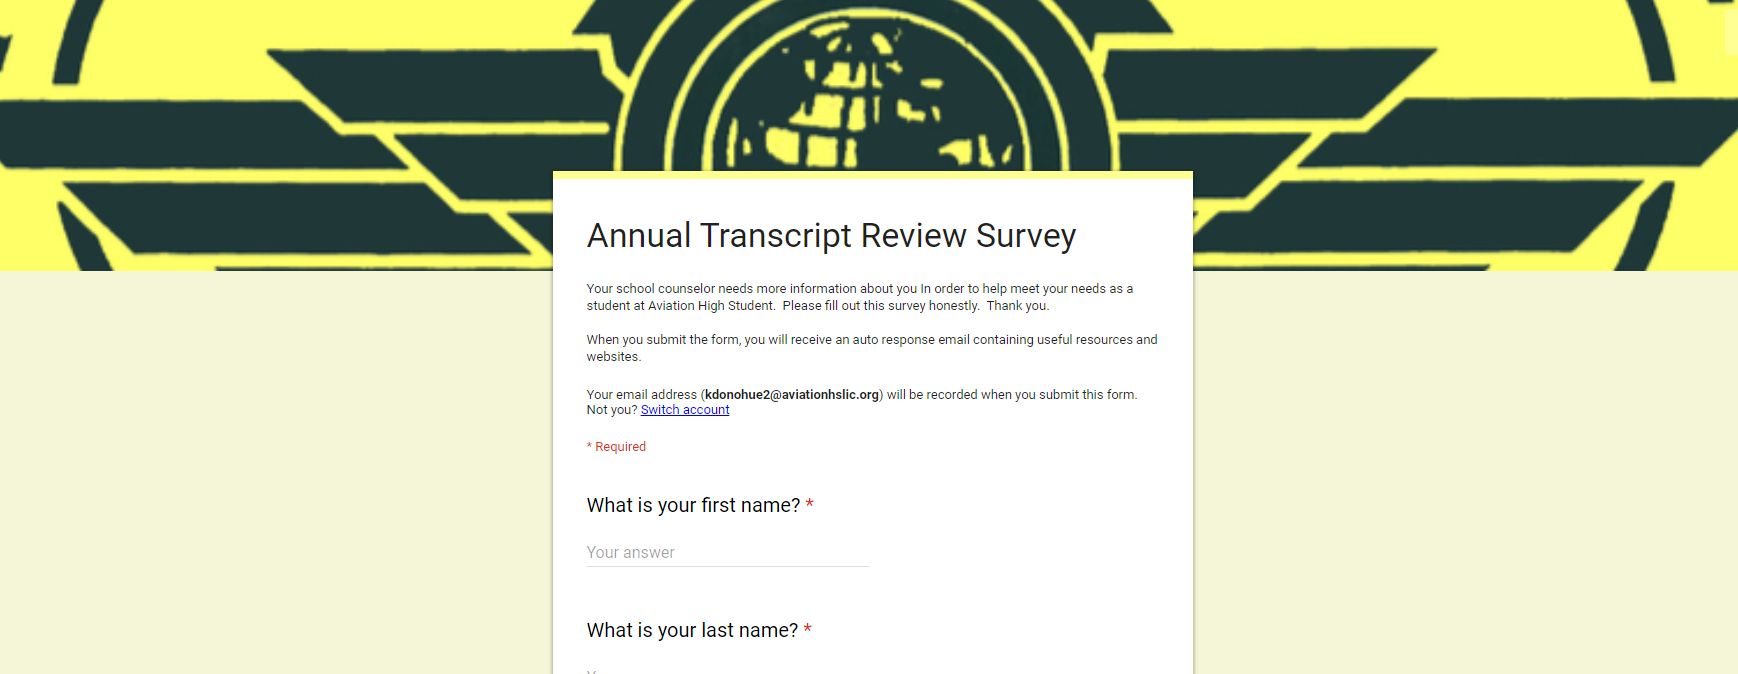 Image of a Transcript Review Google Survey.